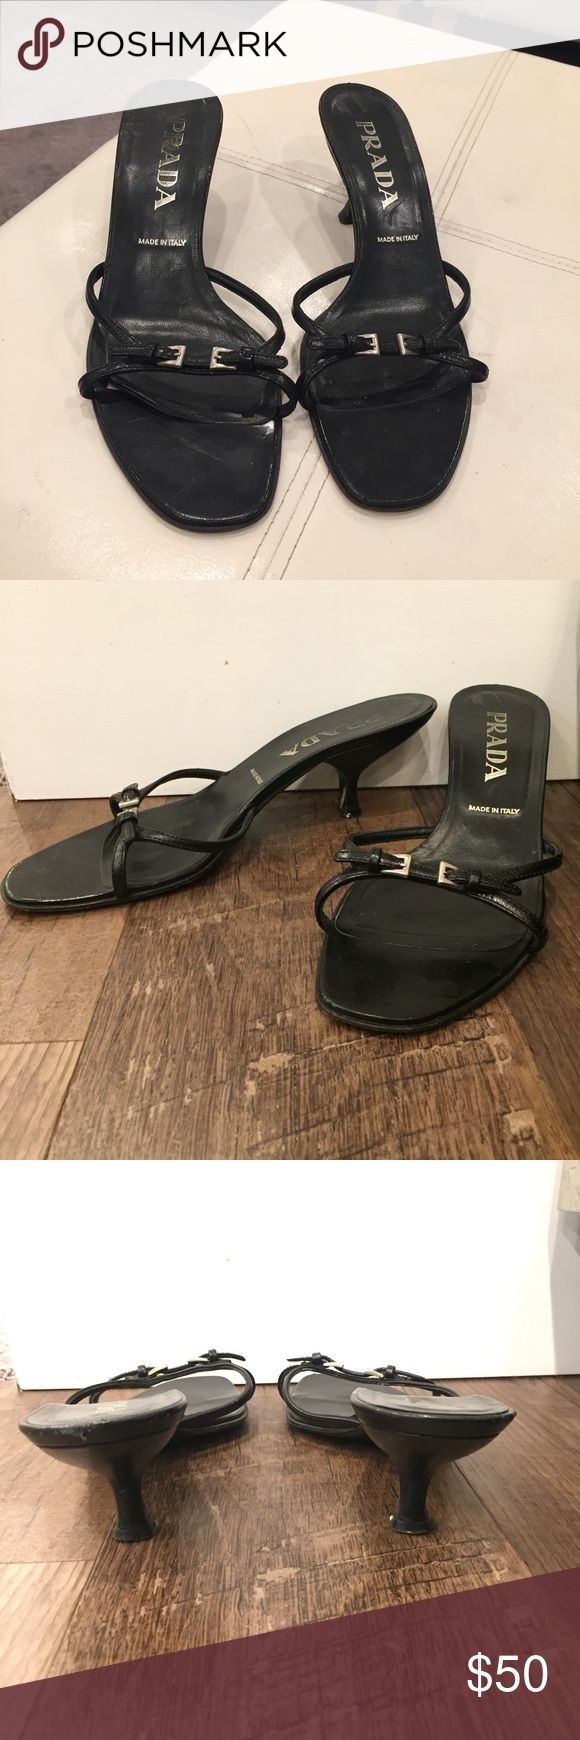 Size 37 (7 US). Black Prada kitten heel sandals. Very cute black Prada kitten heels.  These were previously very loved.  They are in good shape but NOT great shape.  They could use a little TLC.  I've tried to show all of the wear and scuffs but it's hard to show on black items.  They're low and comfortable and definitely have more miles left in them.  Let me know if you want more pics. Make an offer.  Thanks! Prada Shoes Sandals